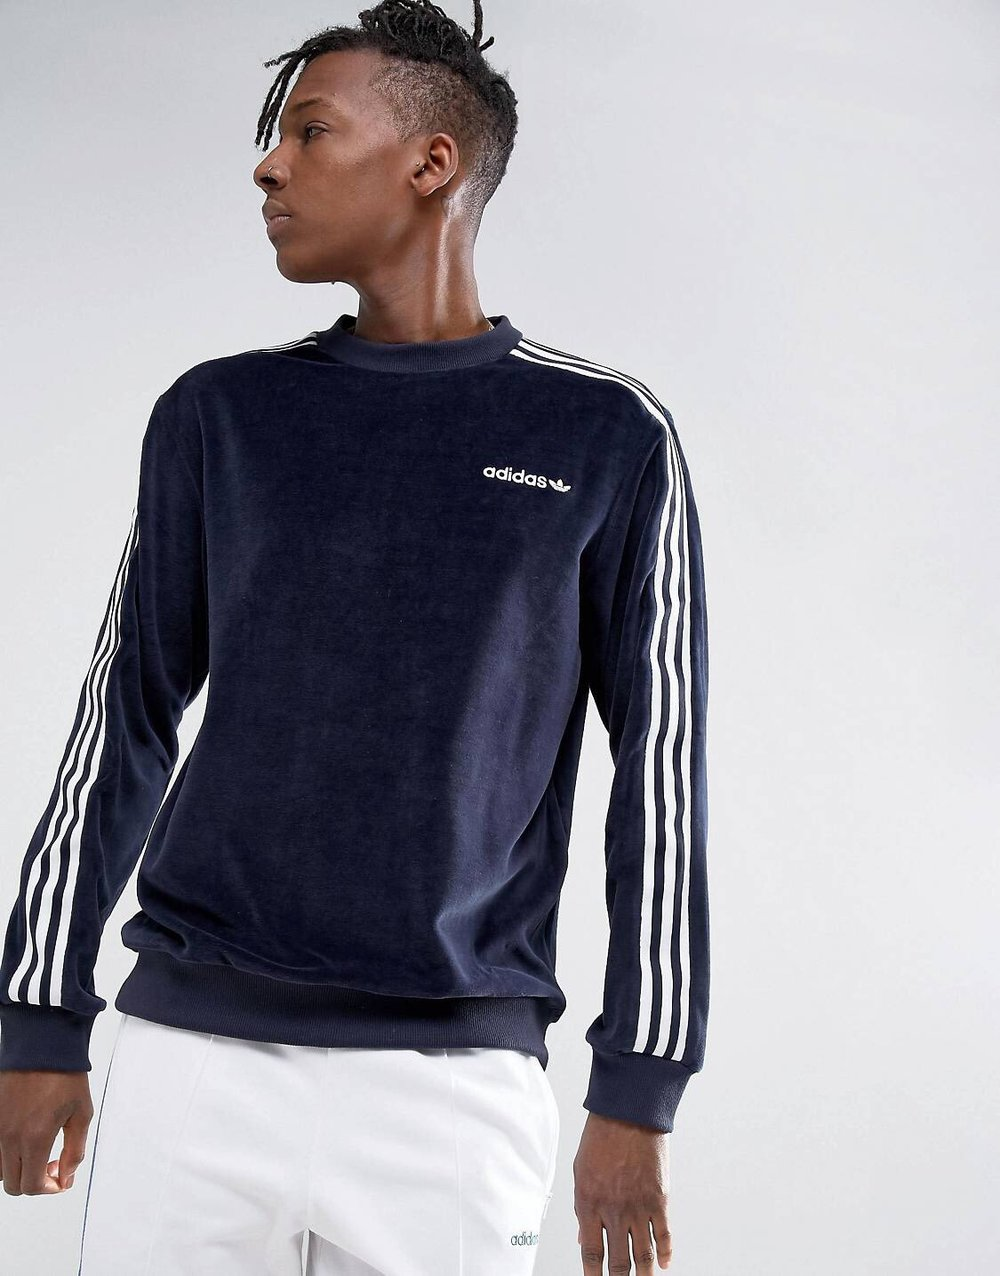 Â£60 Adidas Originals Osaka Velour - I lied. I want this more. I'm here for the return of velour.